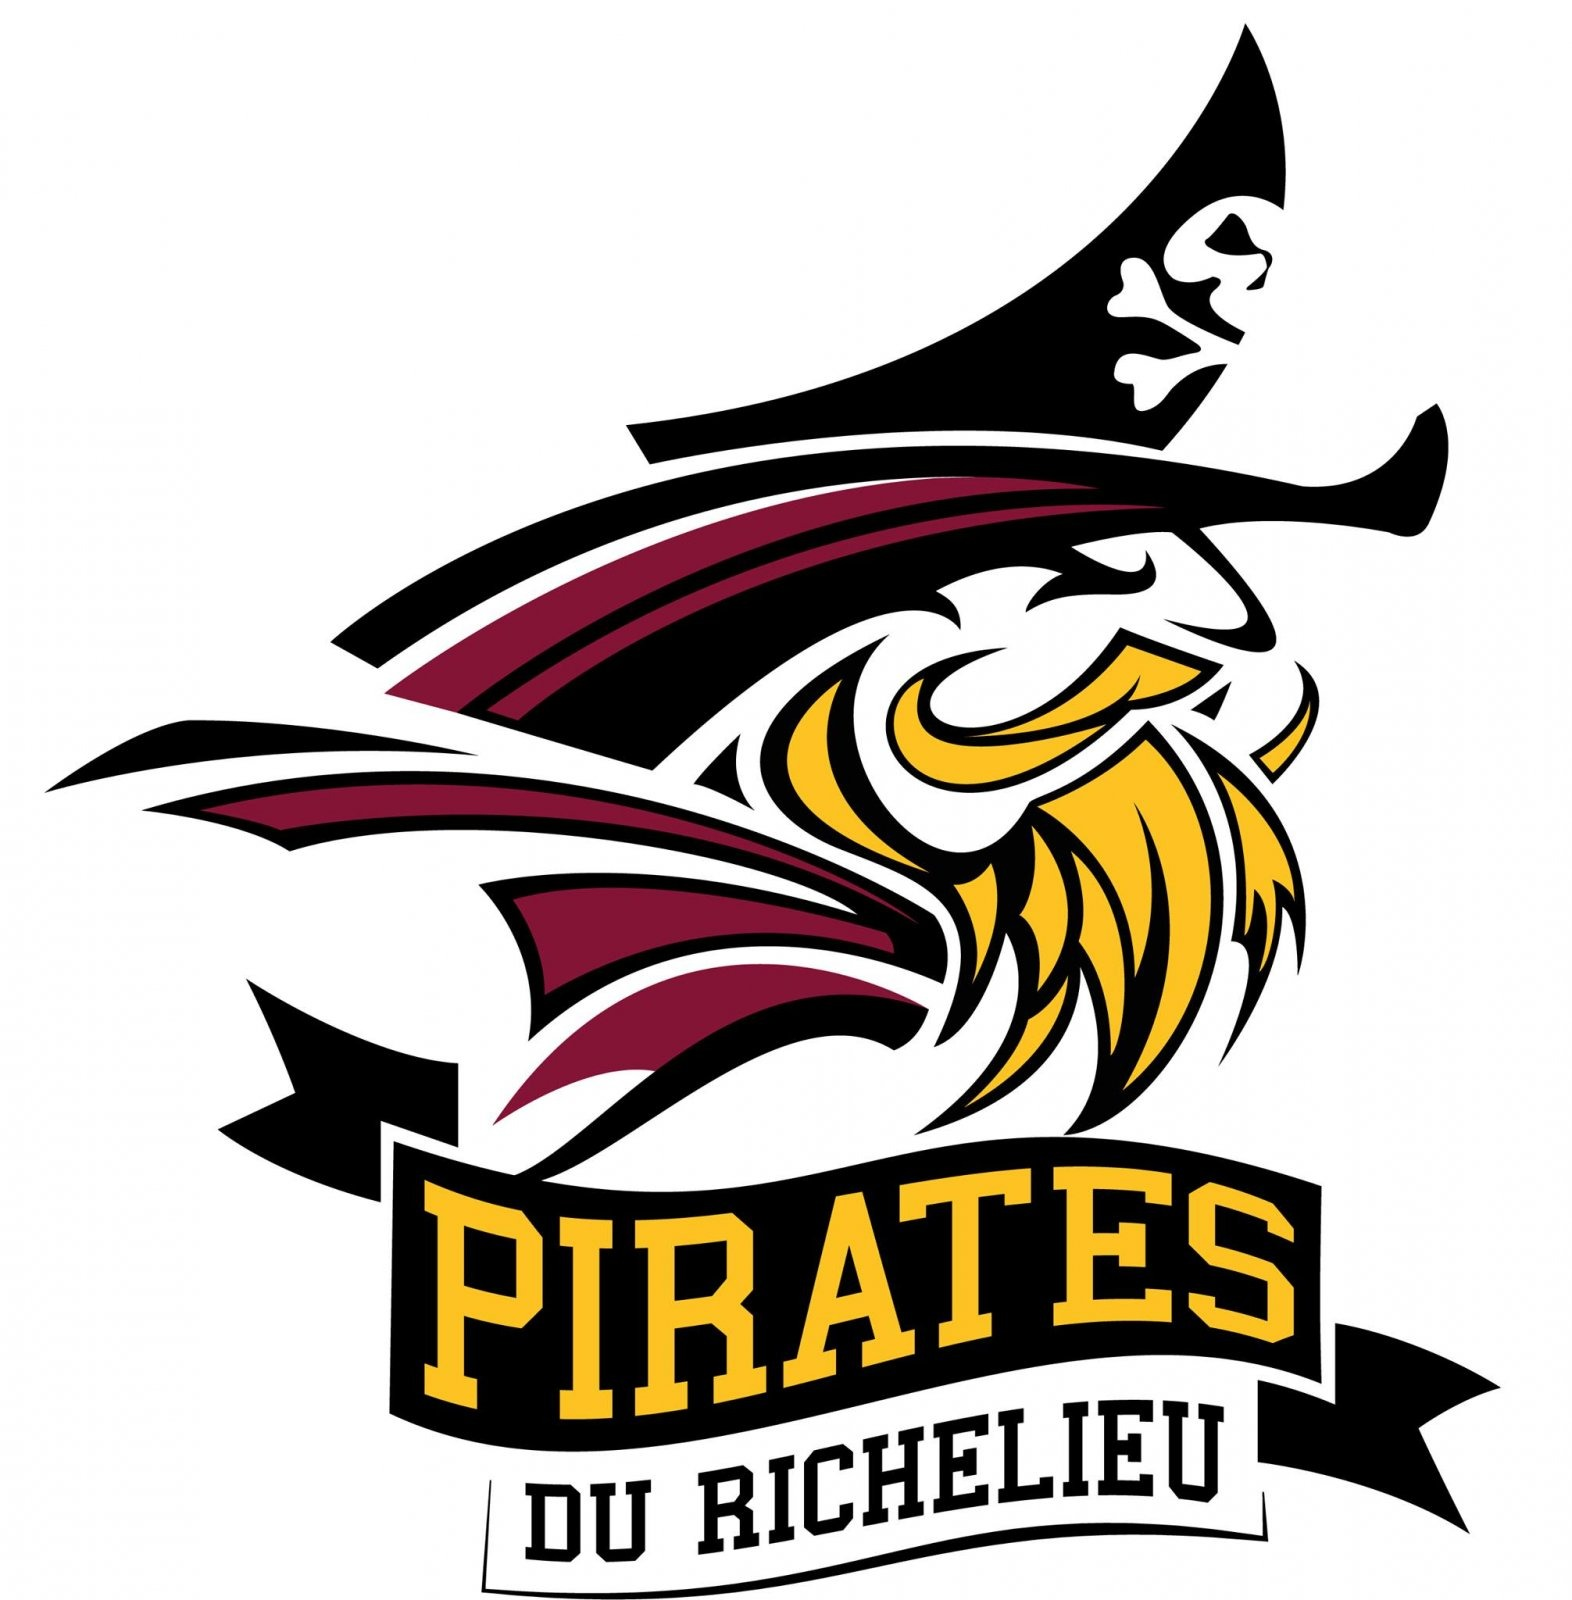 Pirates du Richelieu